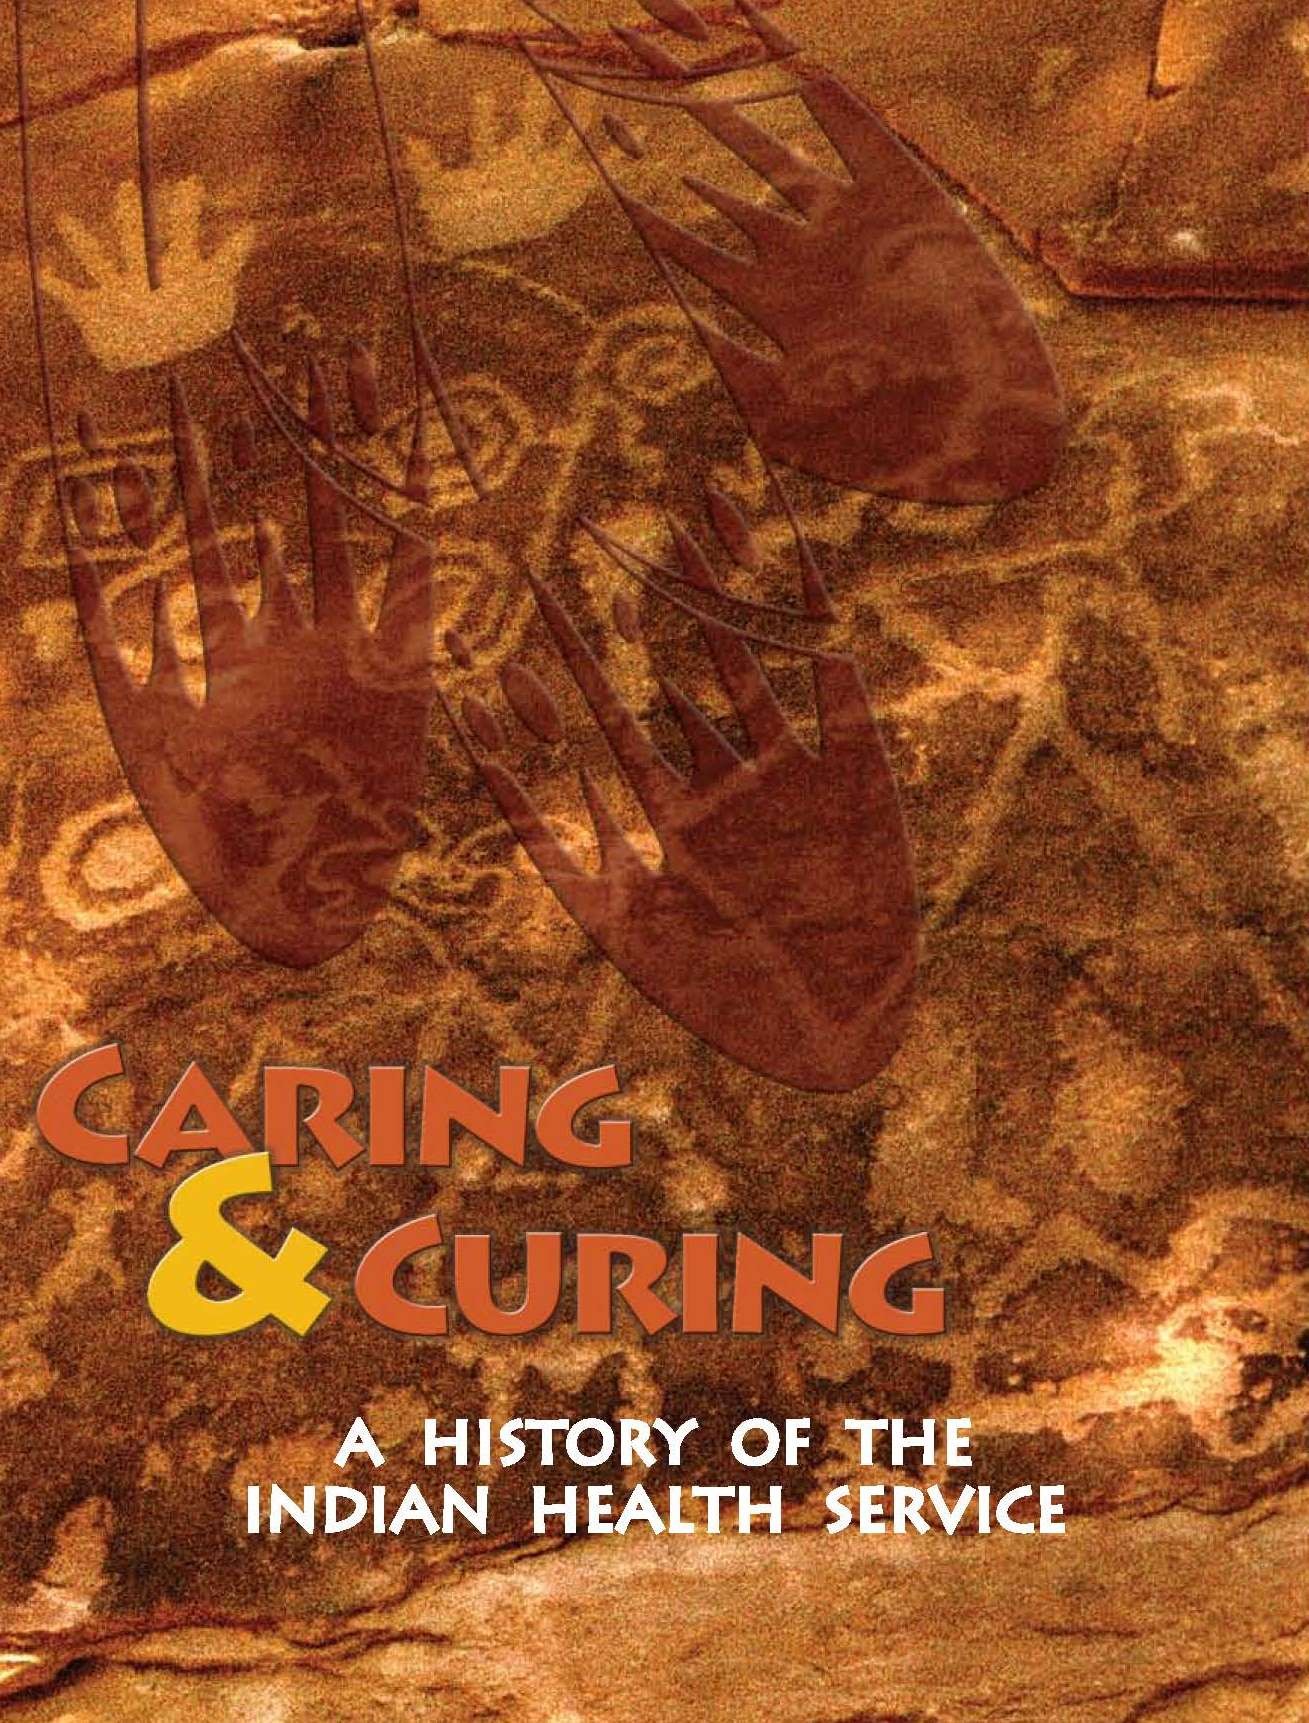 Caring & Curing: A History of the Indian Health Service (2009)